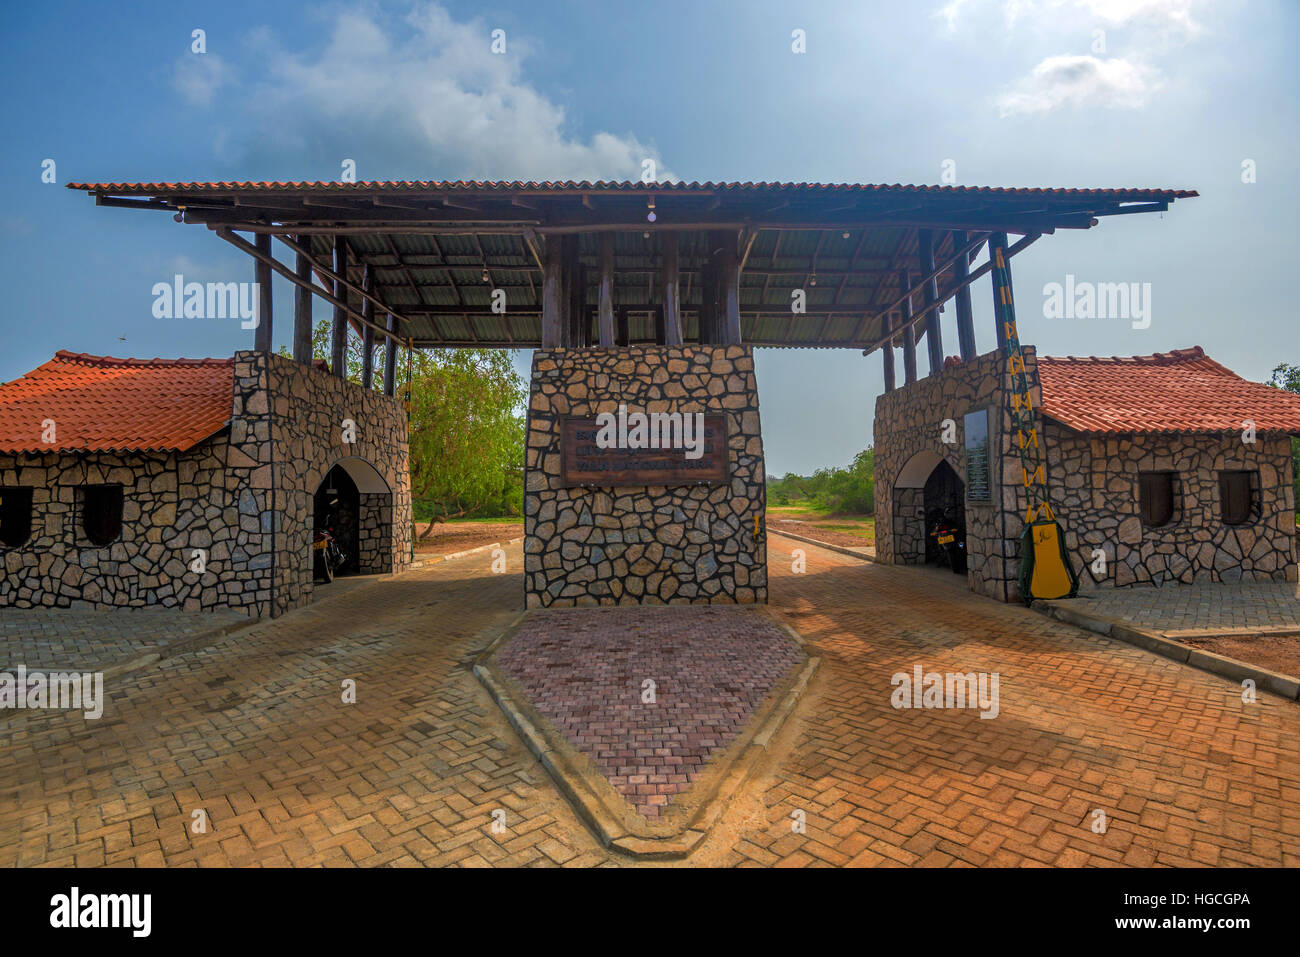 Entrance gate of Yala national park, Sri Lanka - Stock Image